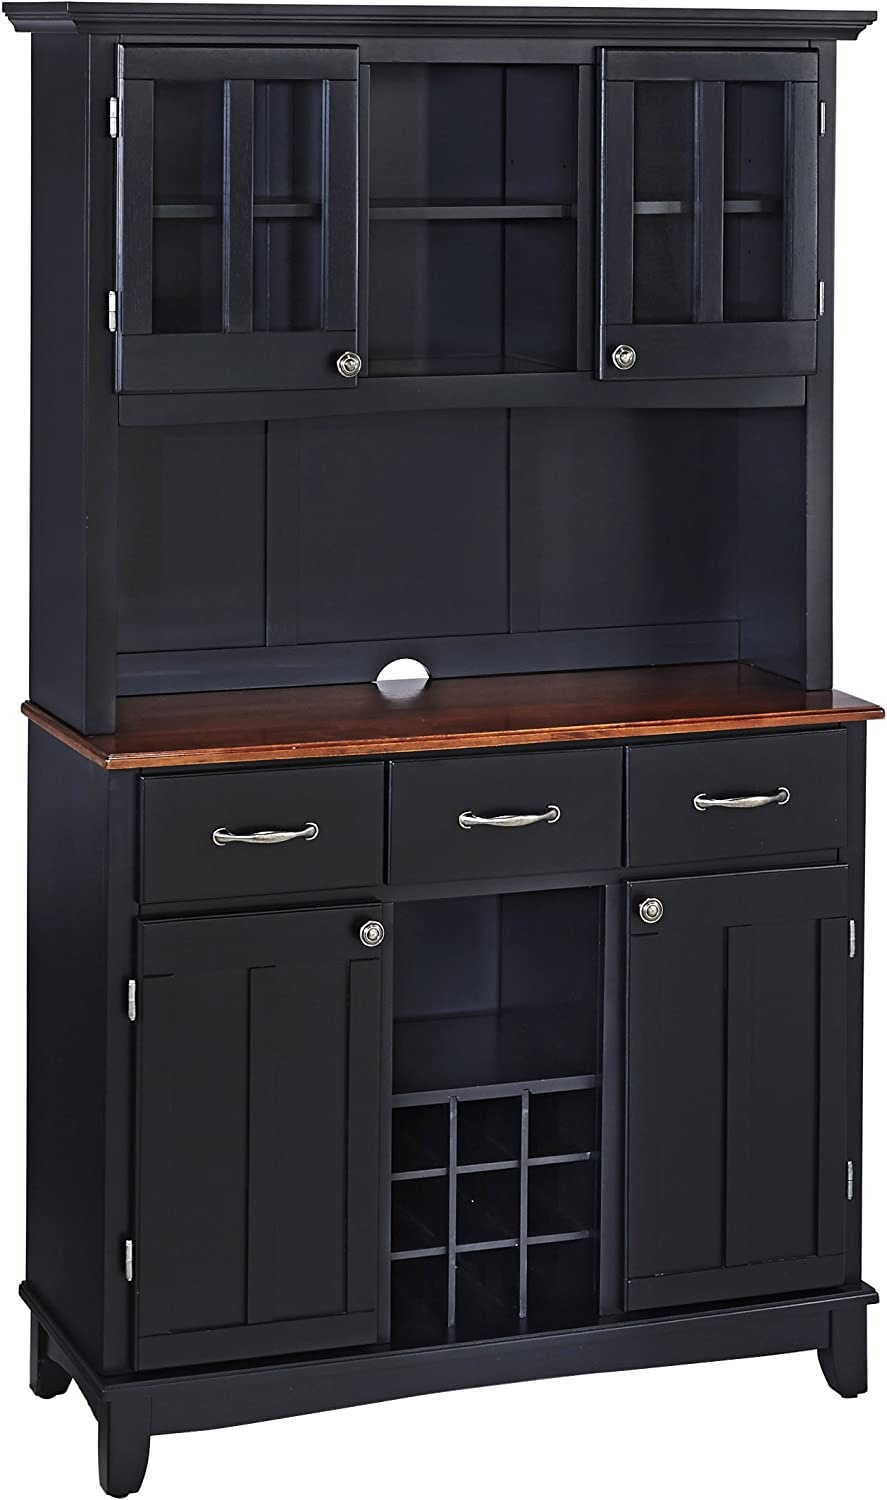 San Francisco Mall Homestyles Max 80% OFF Buffets Medium Cherry with Top by Hutch Wood Hom